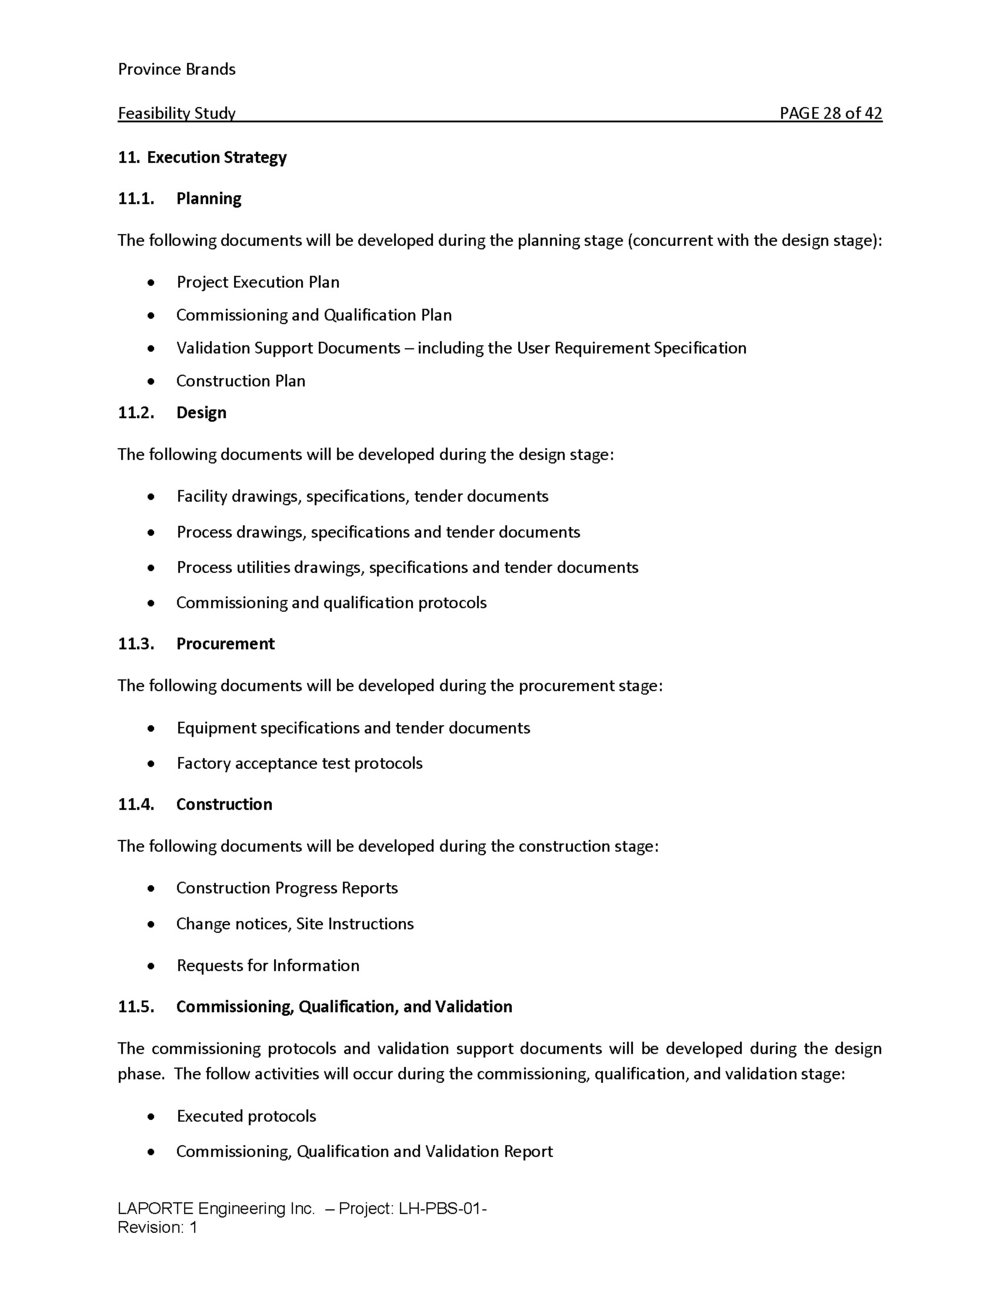 LH-PBS-01_Feasibility Study Report_01 Sep - kevwitch and dooma comments_Page_28.jpg